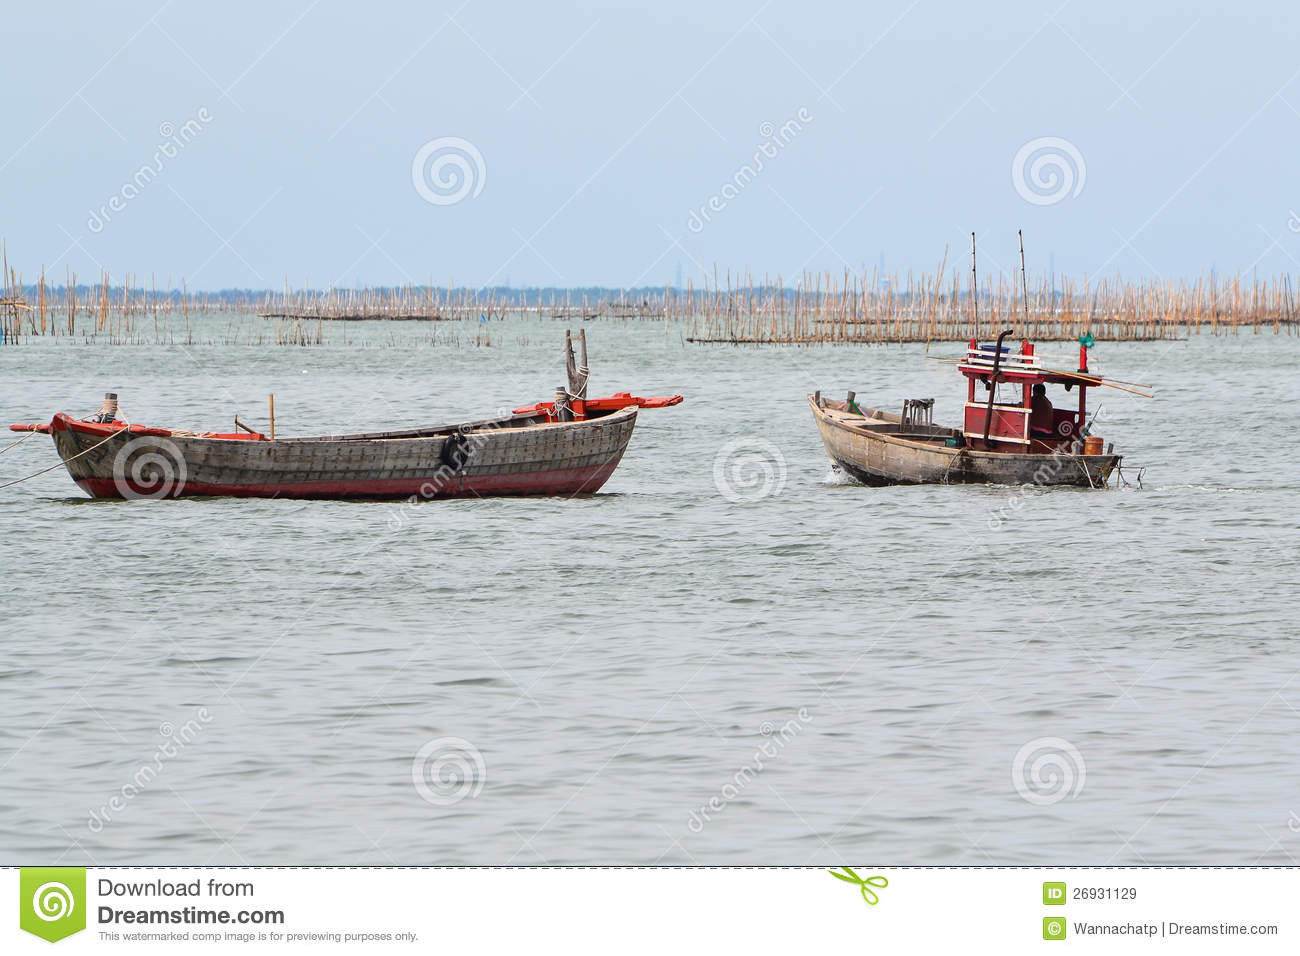 Royalty free stock photos fishing boat image male models for A small fishing boat